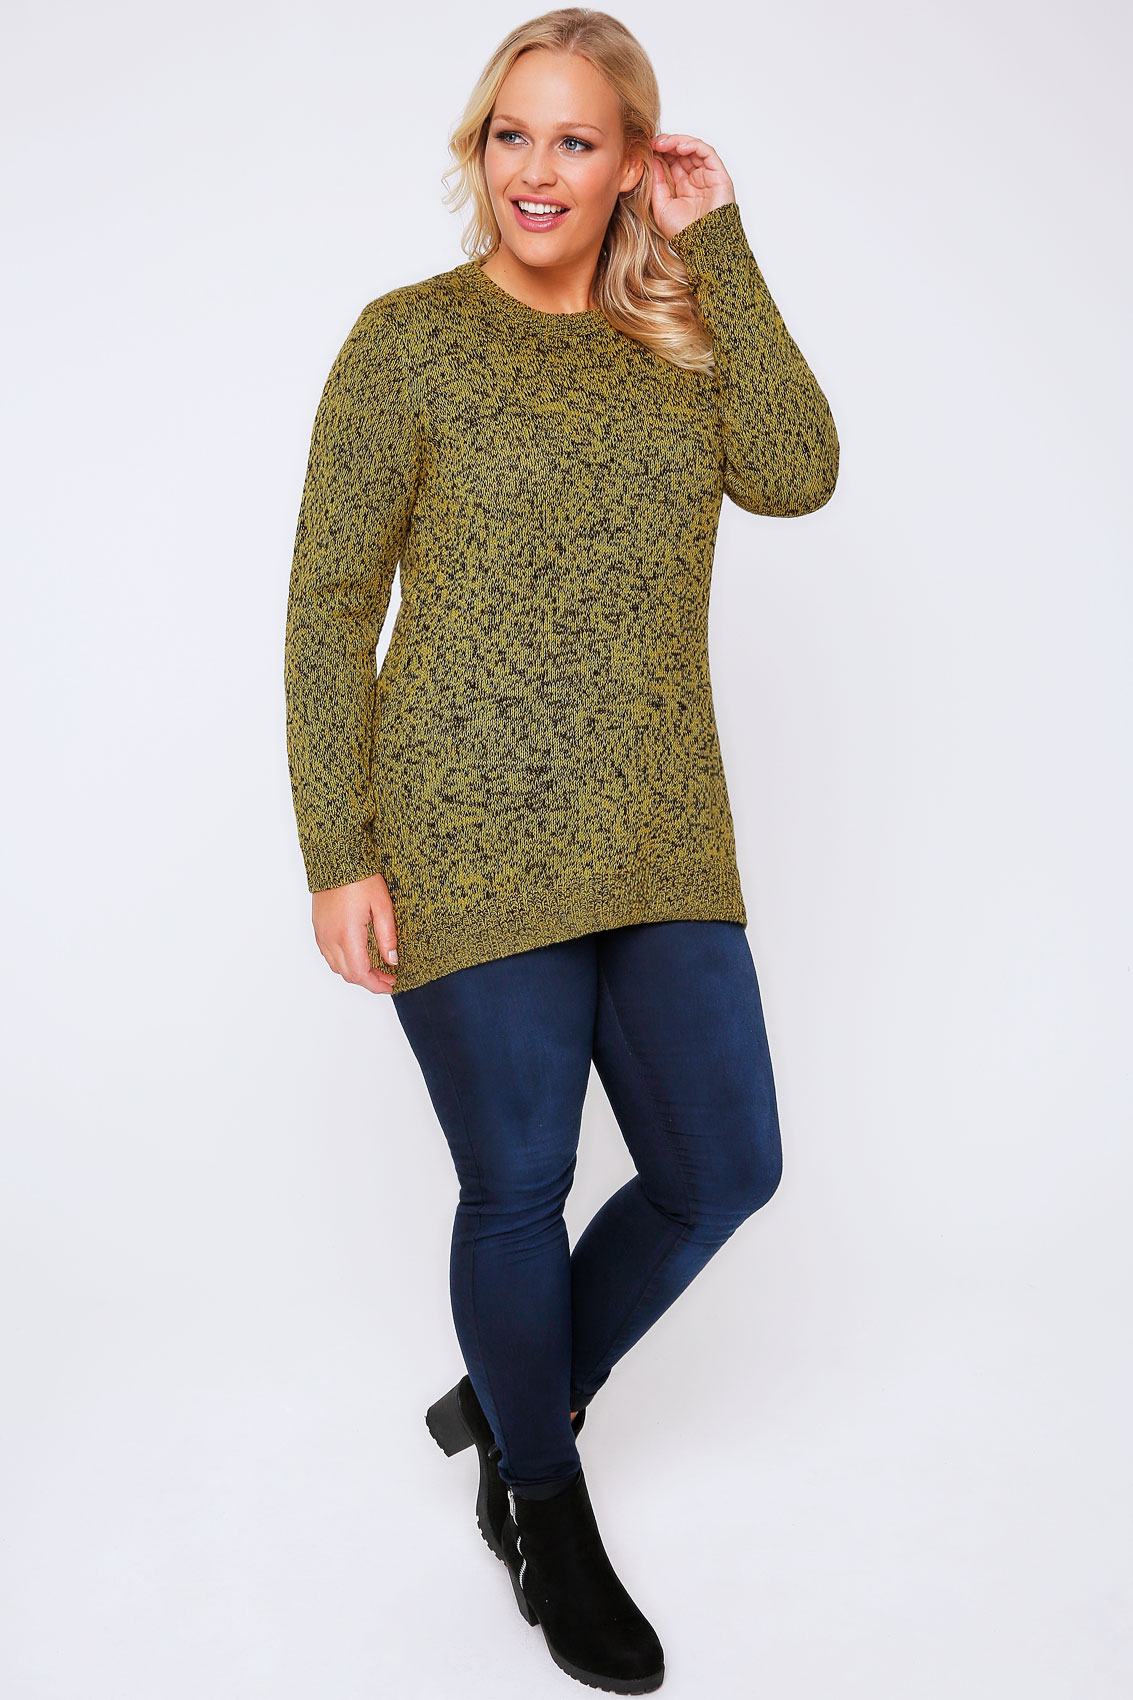 Buy the latest plus size jumpers cheap shop fashion style with free shipping, and check out our daily updated new arrival plus size jumpers at universities2017.ml Plus Size Lace Up Fitted Jumper Dress - BLACK - 3XL. USD USD 2 Colors. Nice and light to wear over clothes or for warmer weather. Style: Brief Material: Polyester Silhouette.